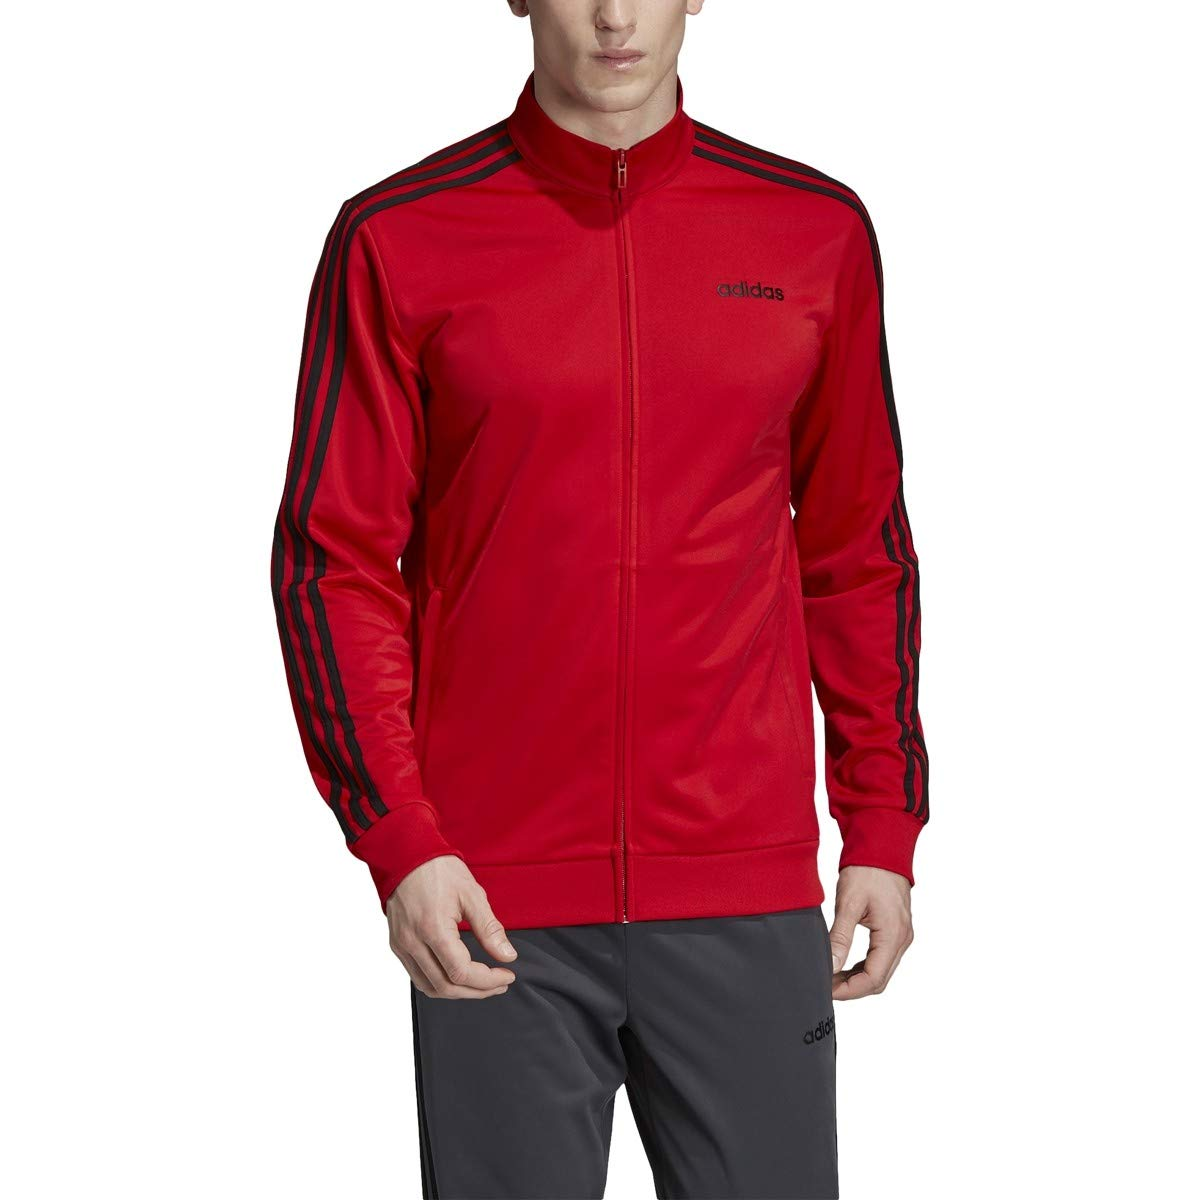 adidas Essentials Men's 3-Stripes Tricot Track Jacket, Scarlet, 5X-Large by adidas